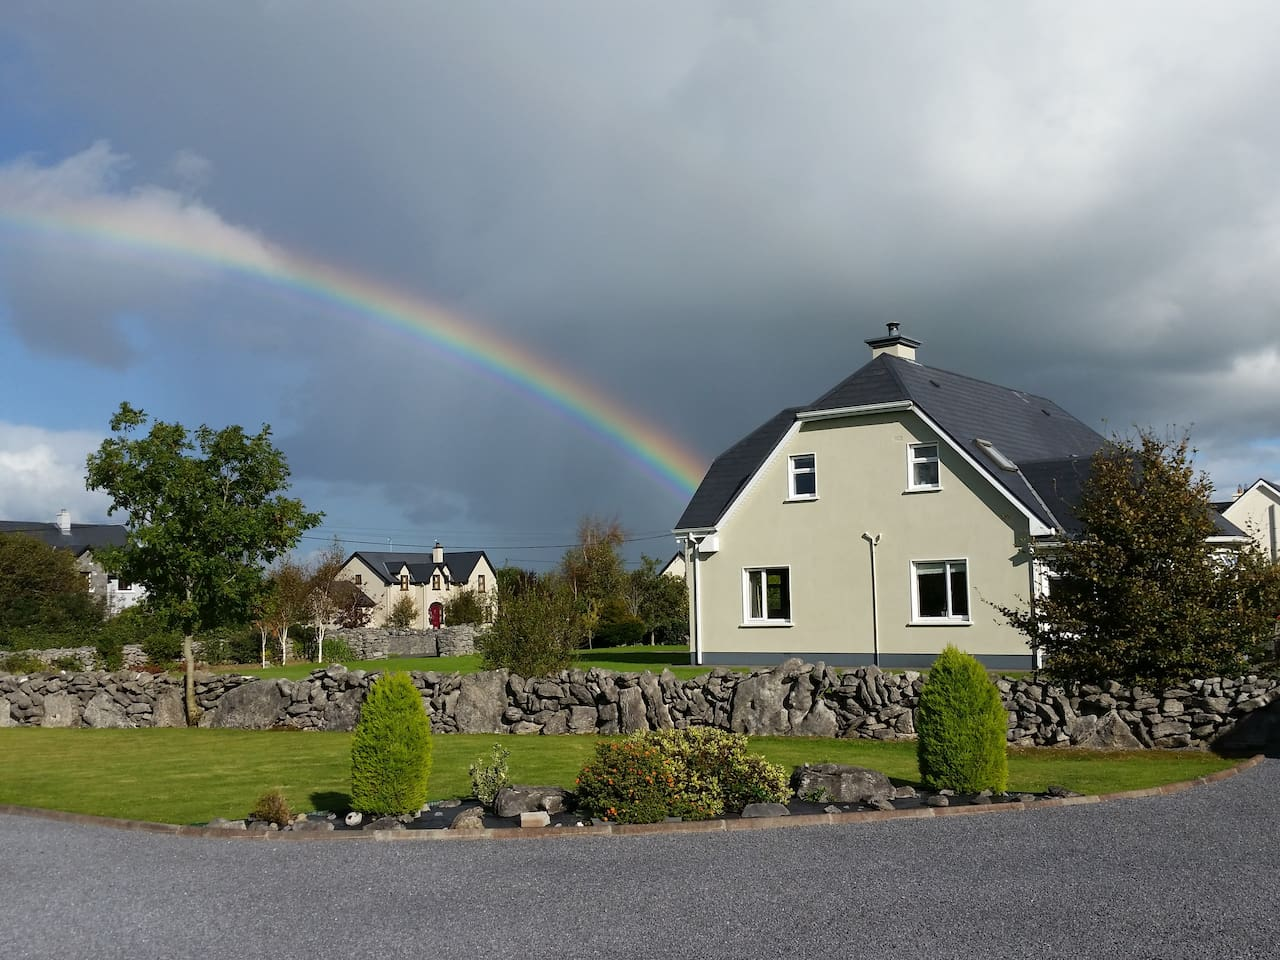 Home at the end of a rainbow